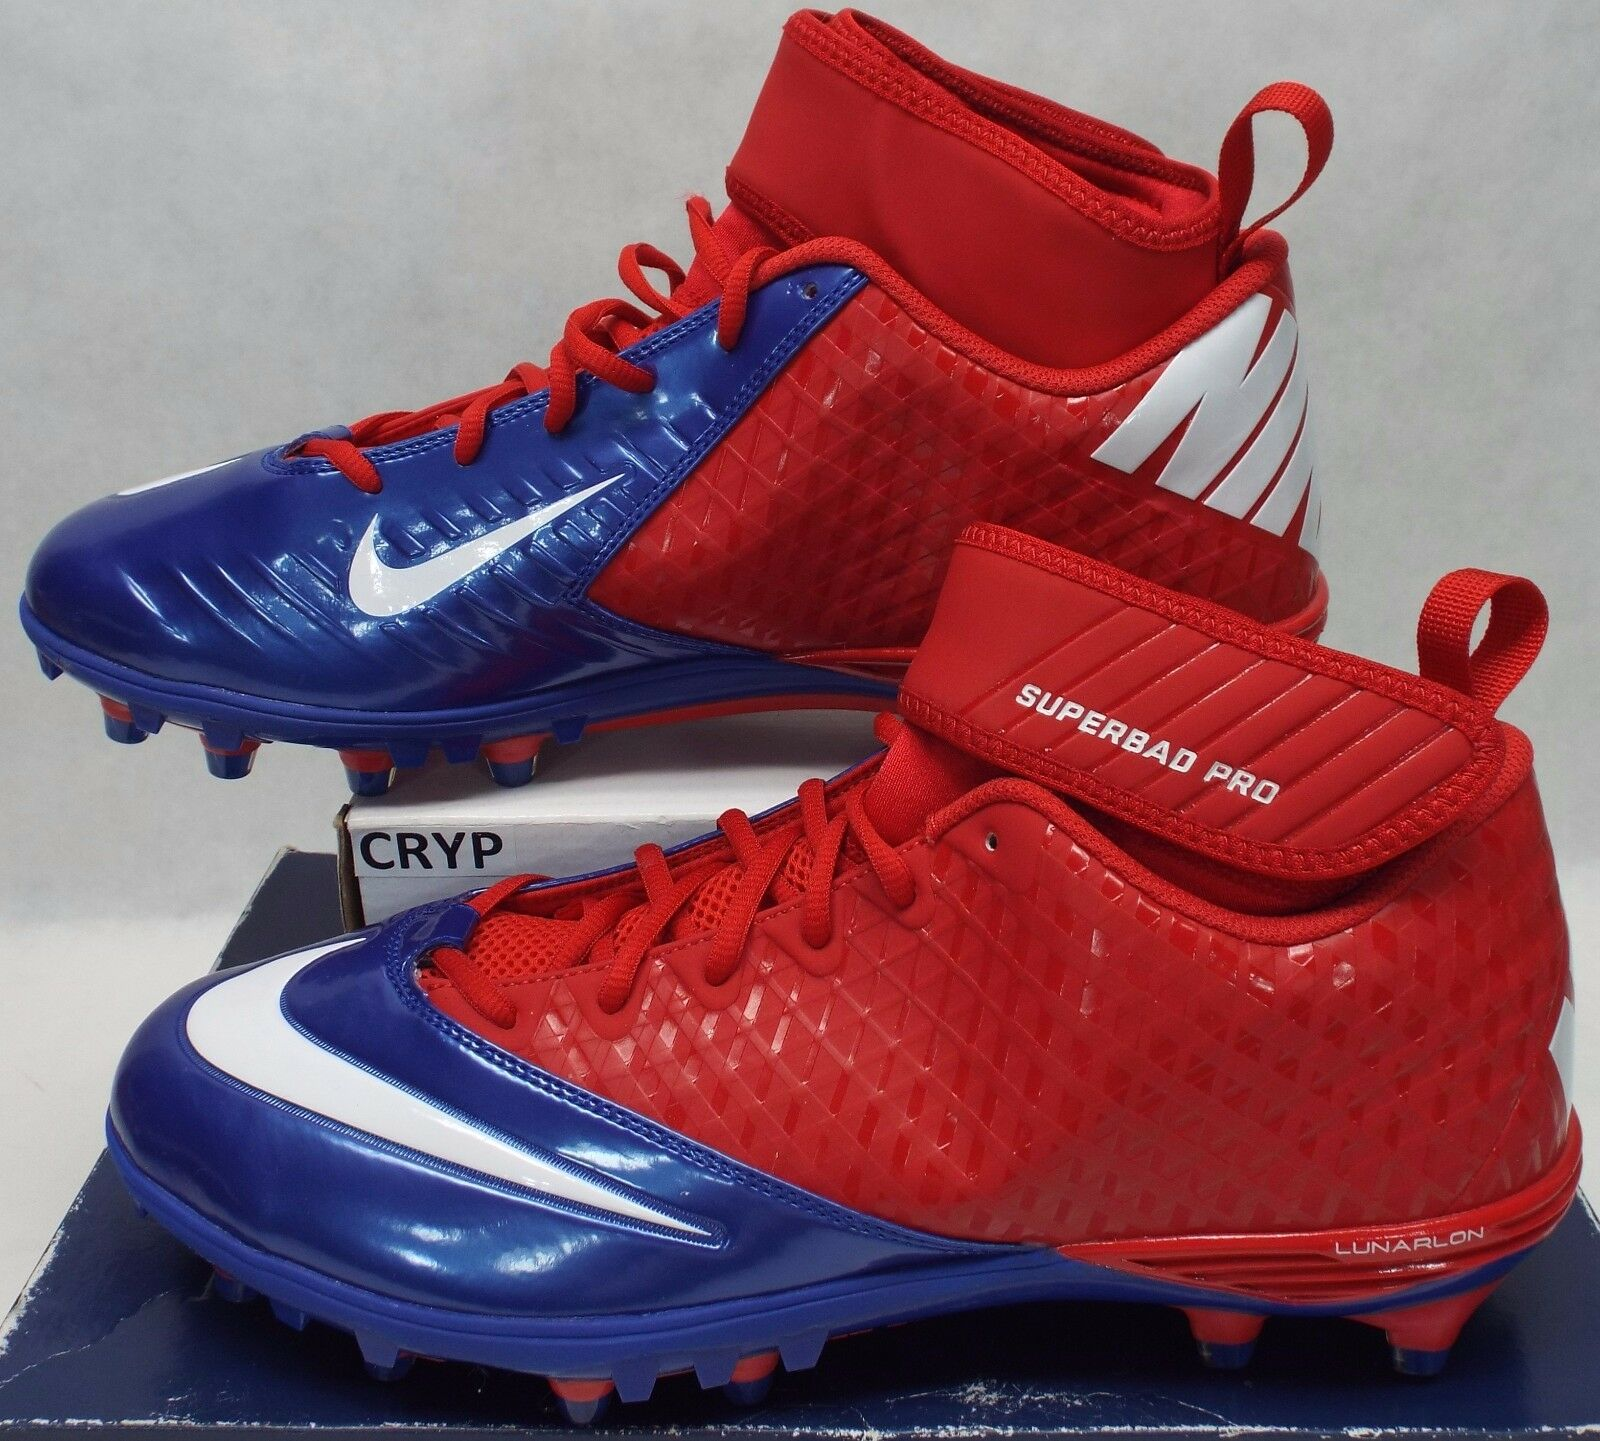 New Mens 13 NIKE Lunarlon Superbad Blue Red White Cleats Shoes 105 534994-604